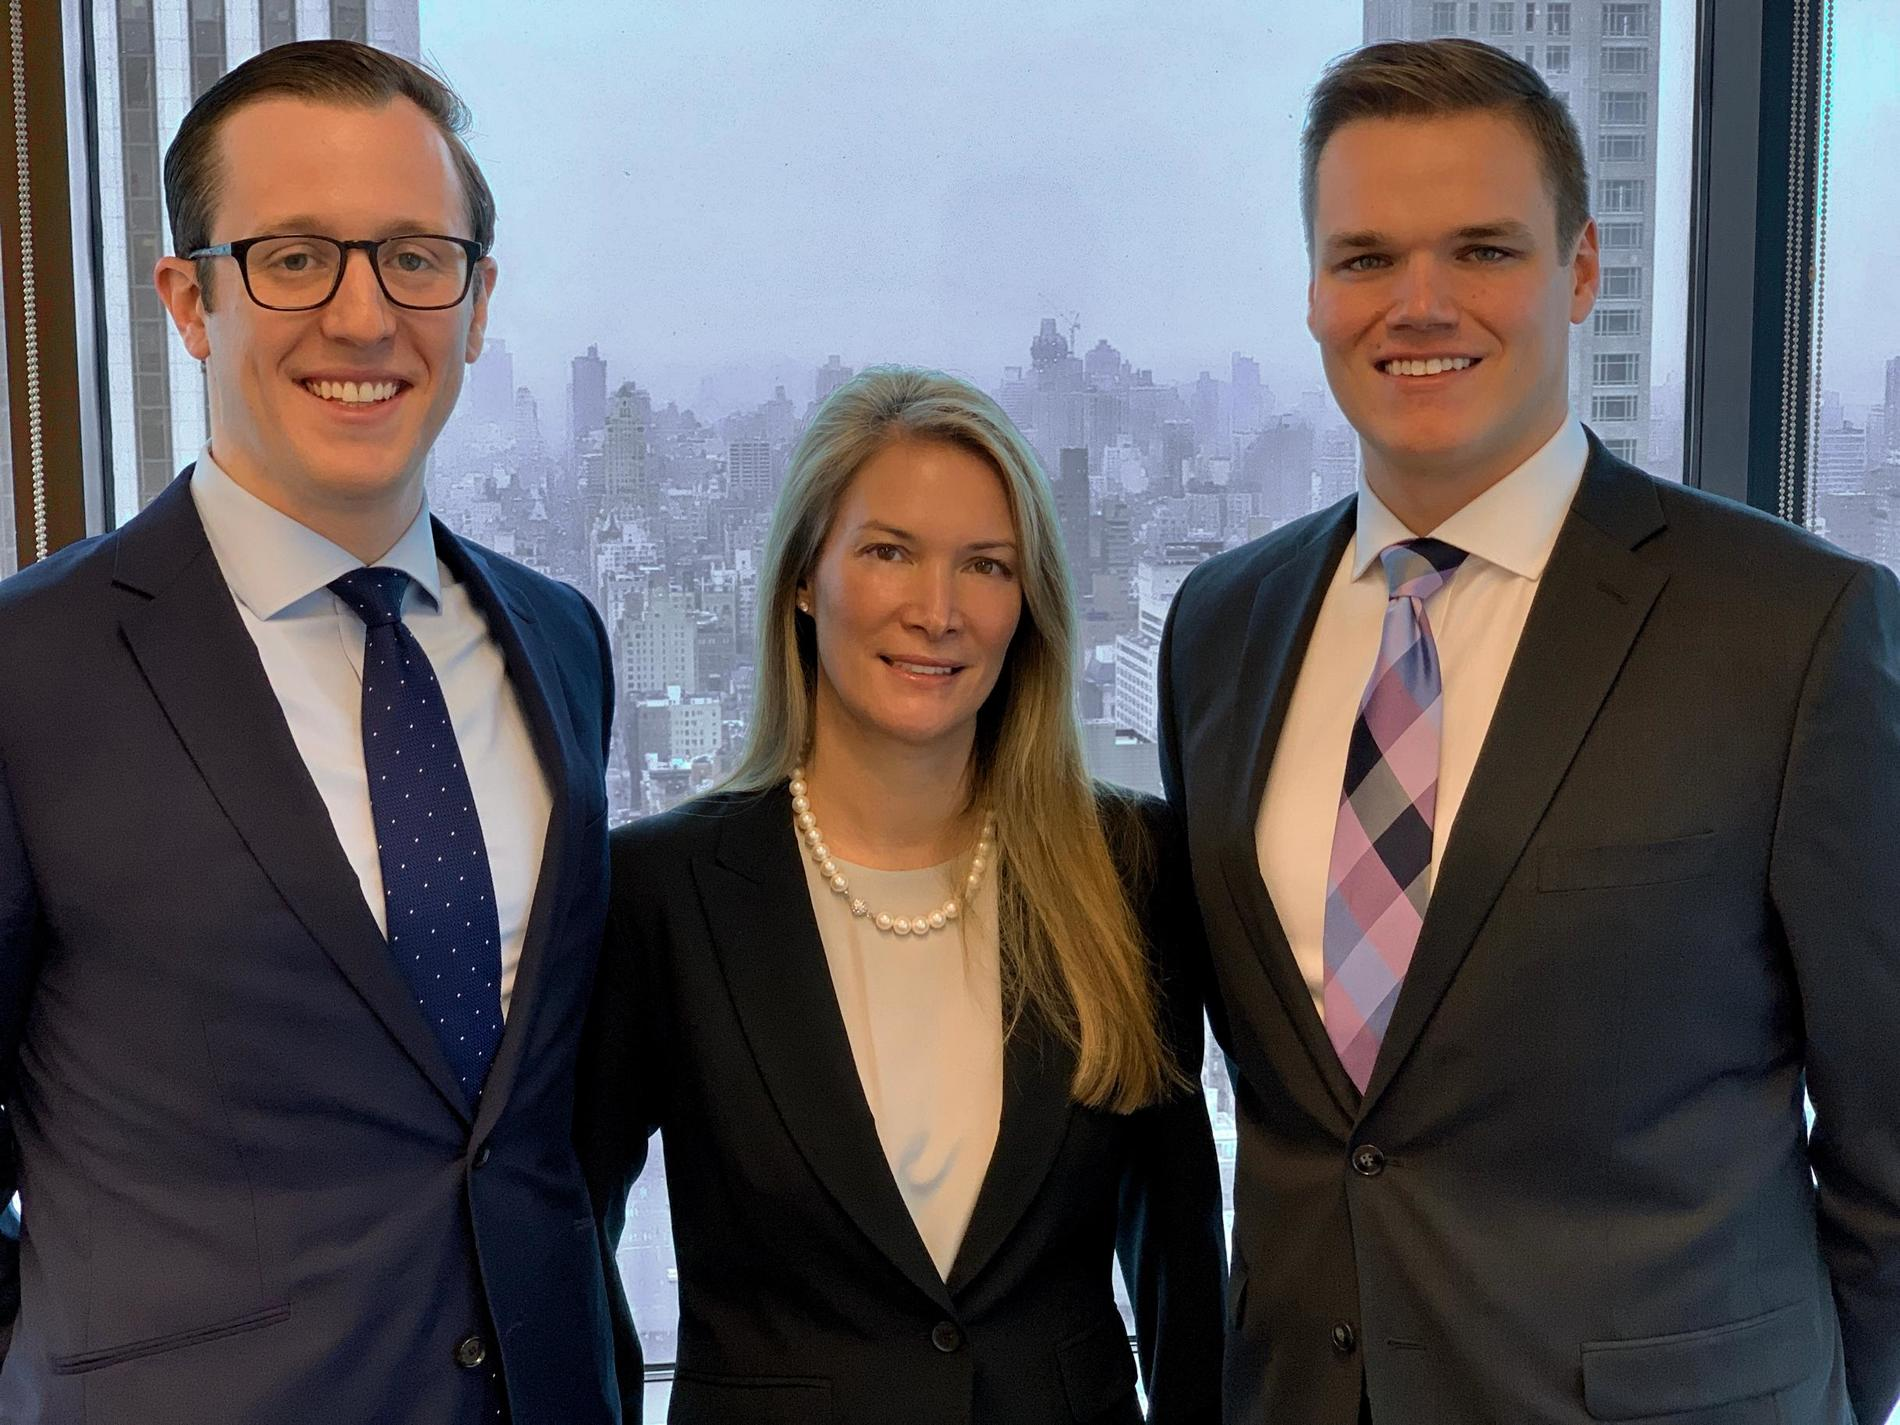 RBK Group | New York, NY | Morgan Stanley Wealth Management